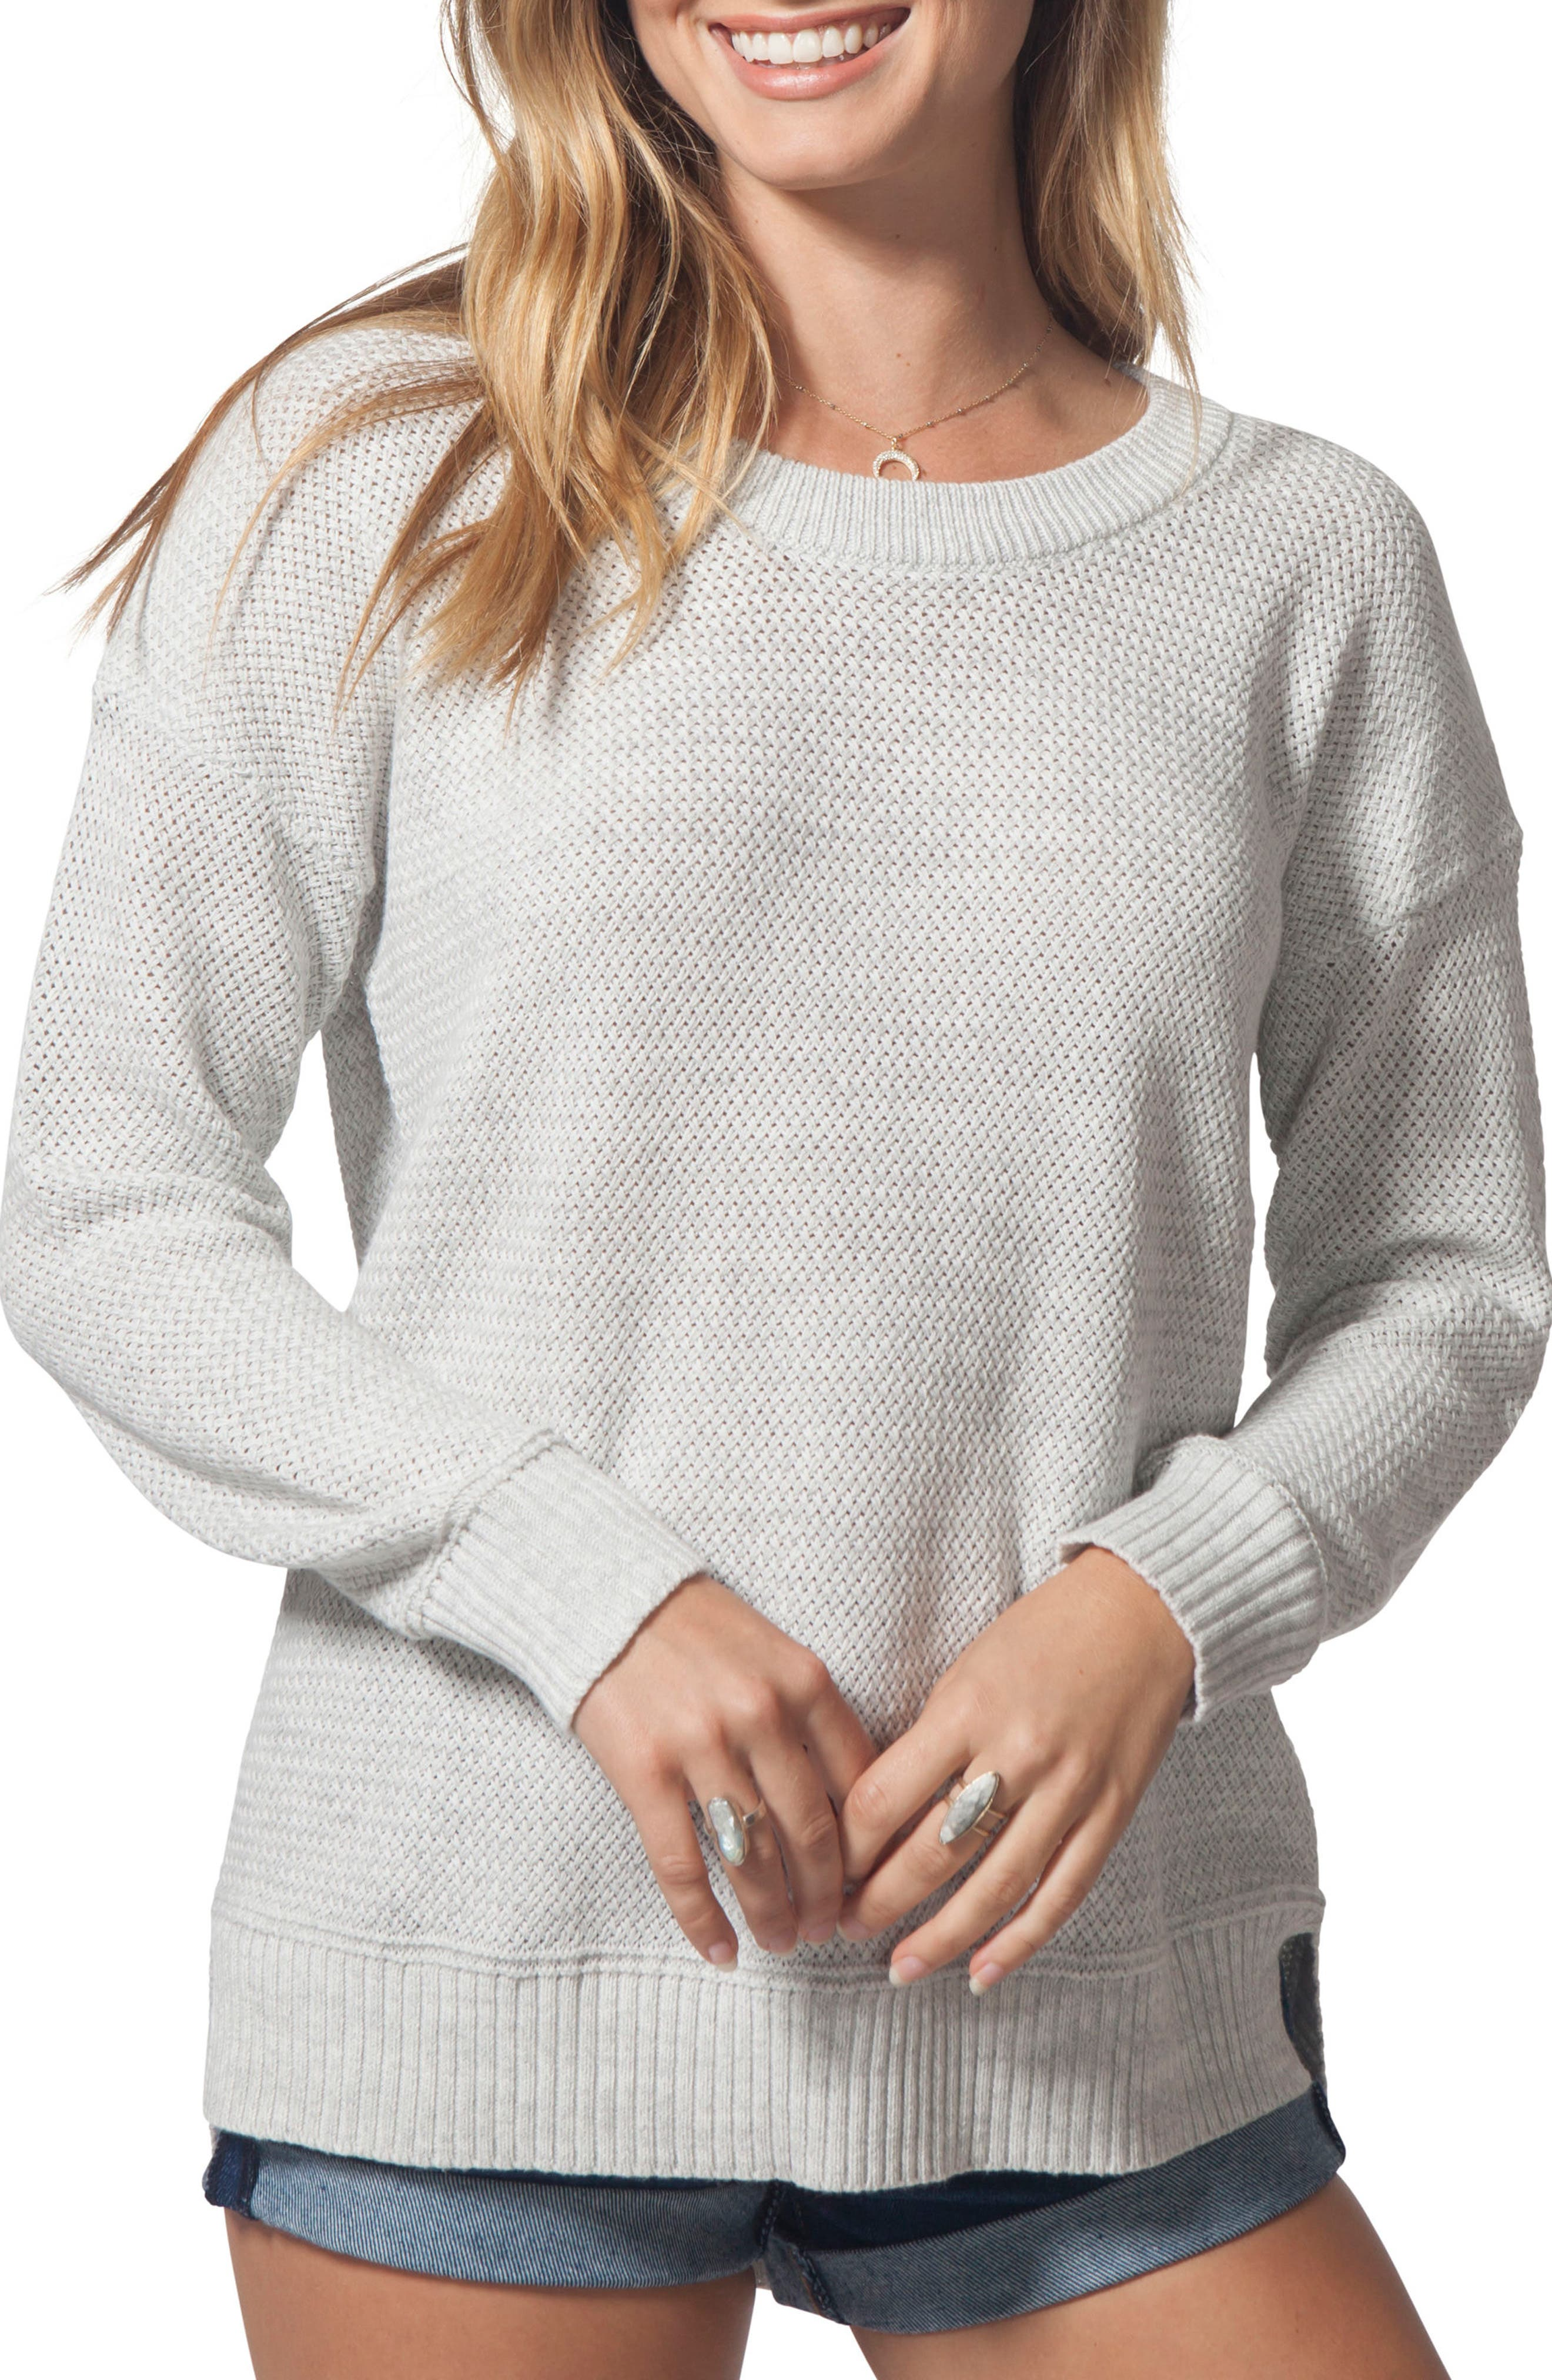 Wanderer Pullover,                         Main,                         color, 054